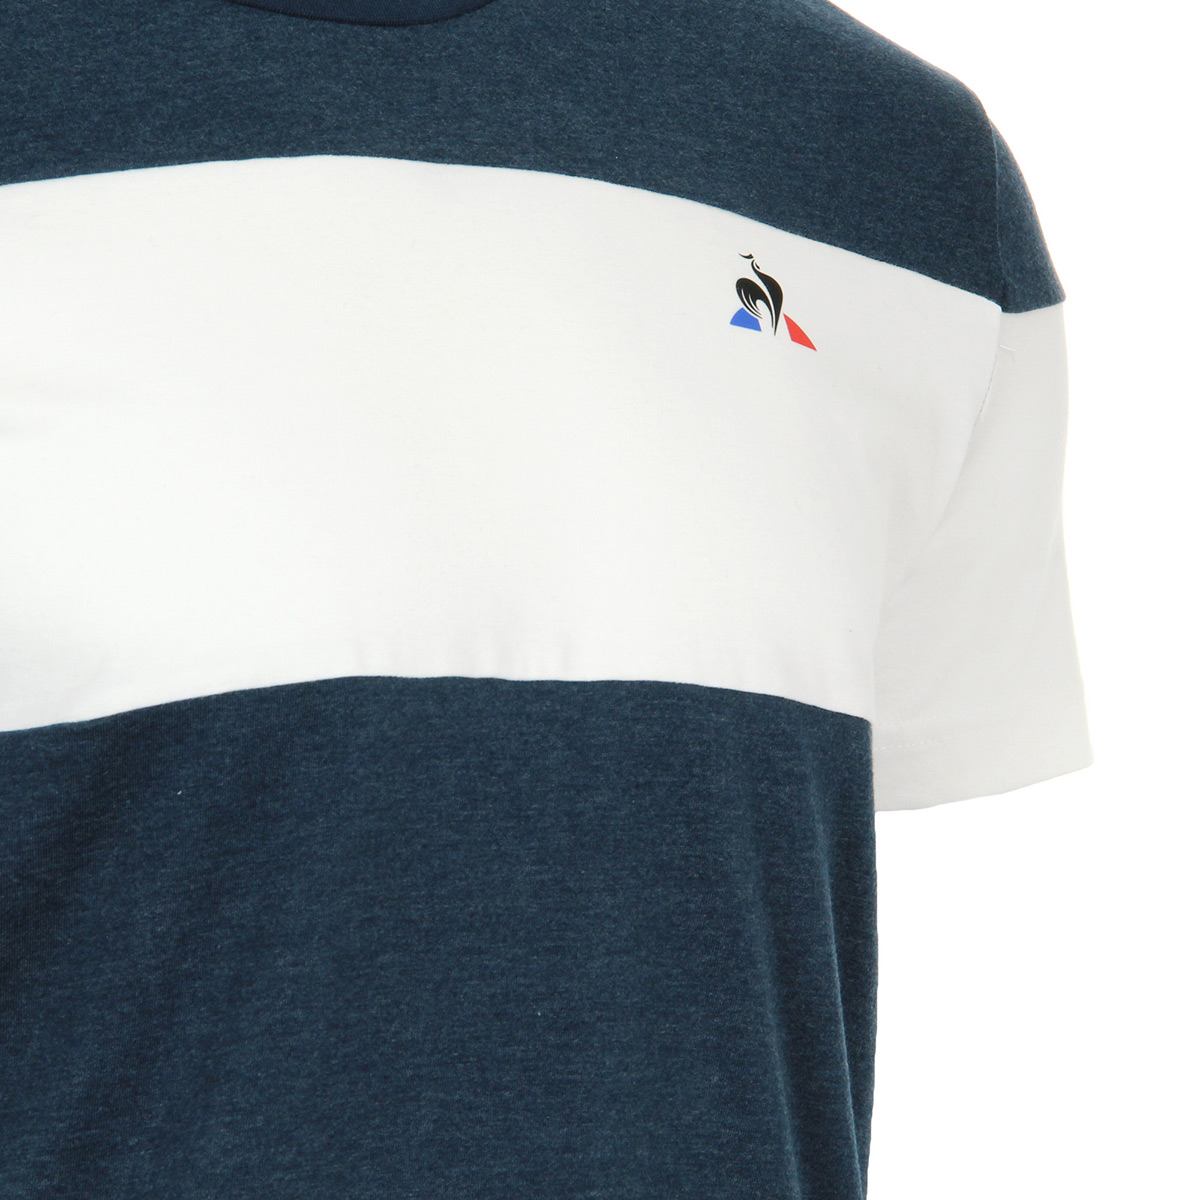 Le Coq Sportif TRI Tee SS N°4dress blues ST/n.optica 1810846, T-Shirts homme